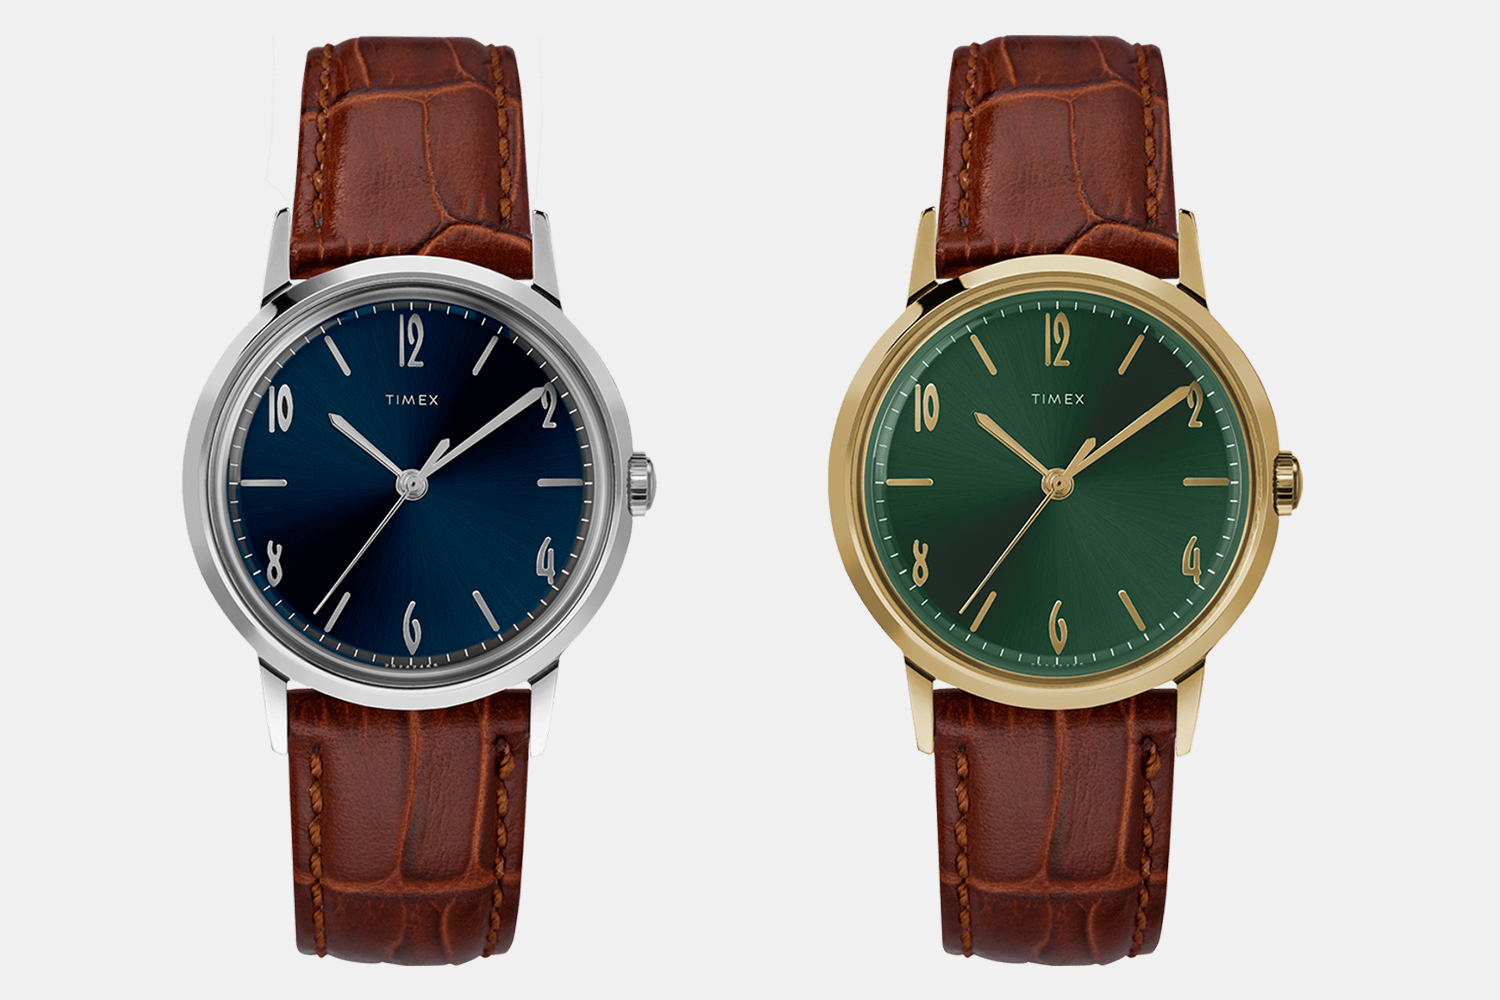 Timex Marlin Hand-Wound Watches in blue and green